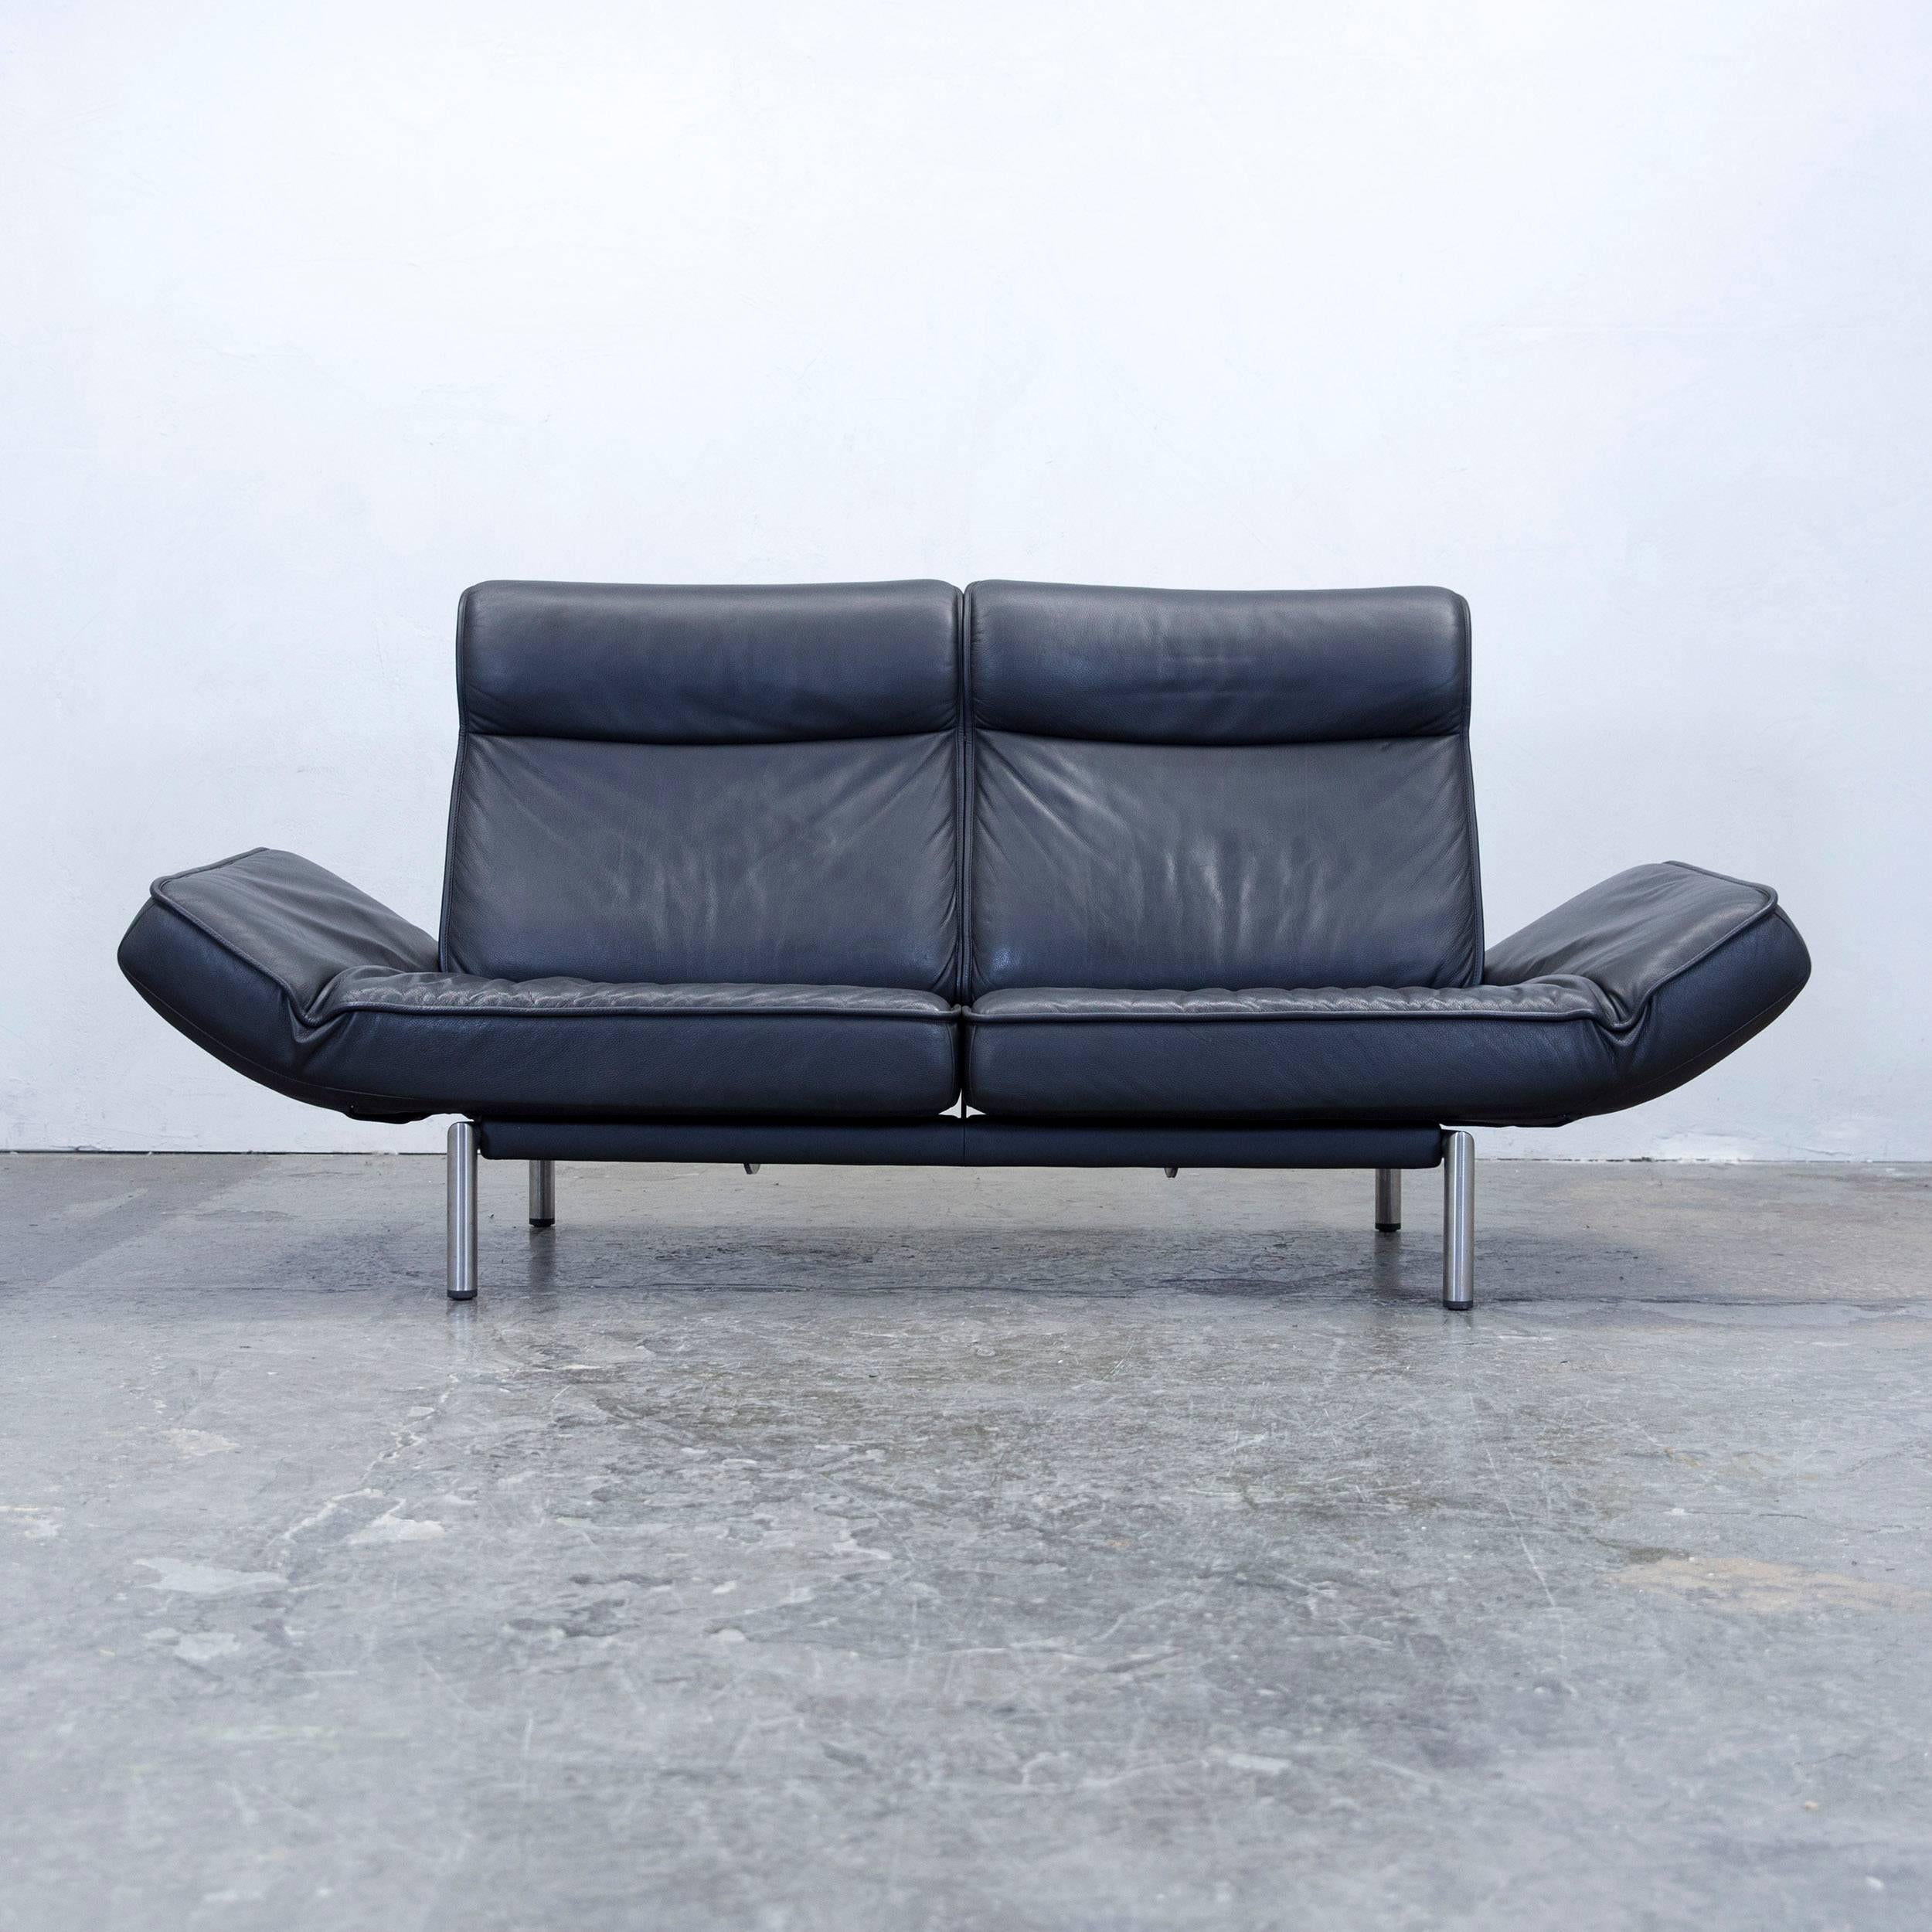 De Sede Ds Designer Leather Sofa Black Relax Function Twoseat Modern With  Couch Schwarz